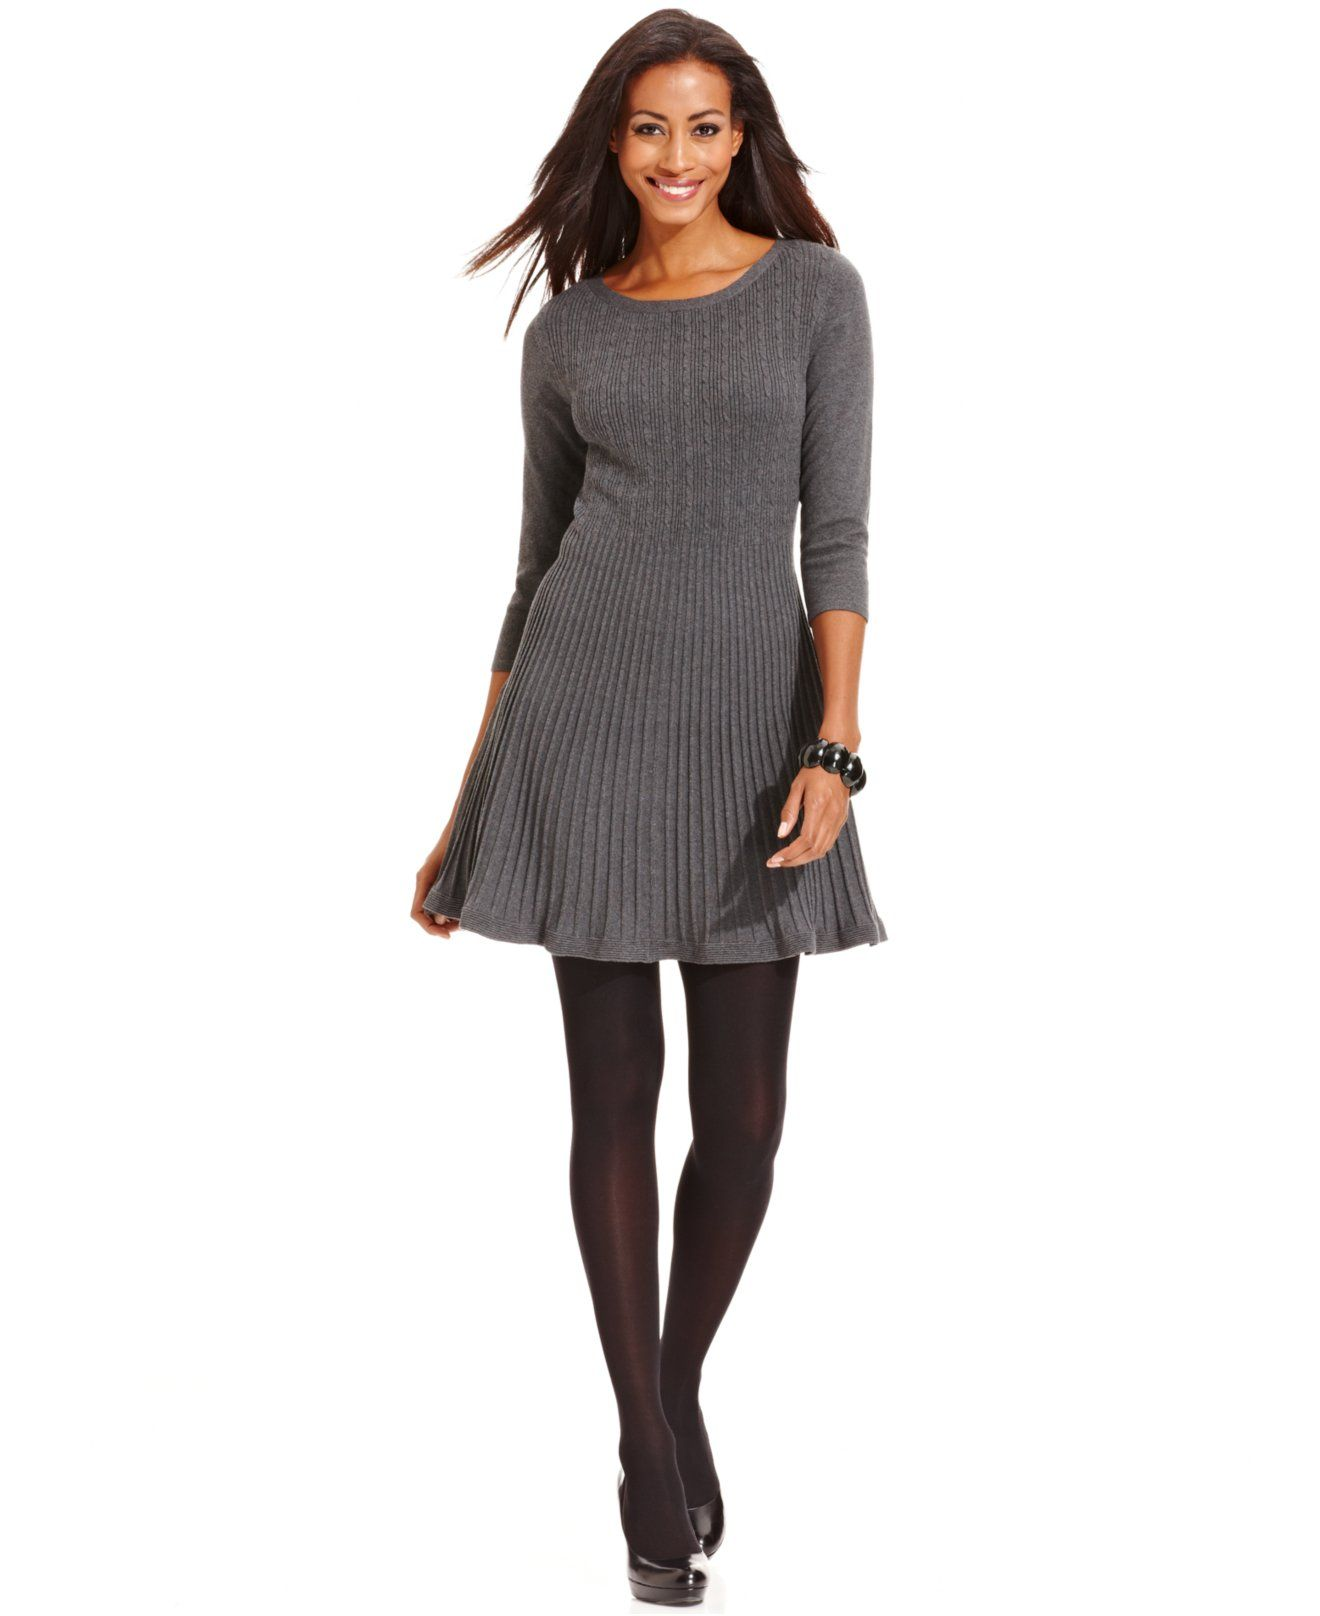 Styleco. Petite Cable-Knit A-Line Sweater Dress - Dresses - Women ...